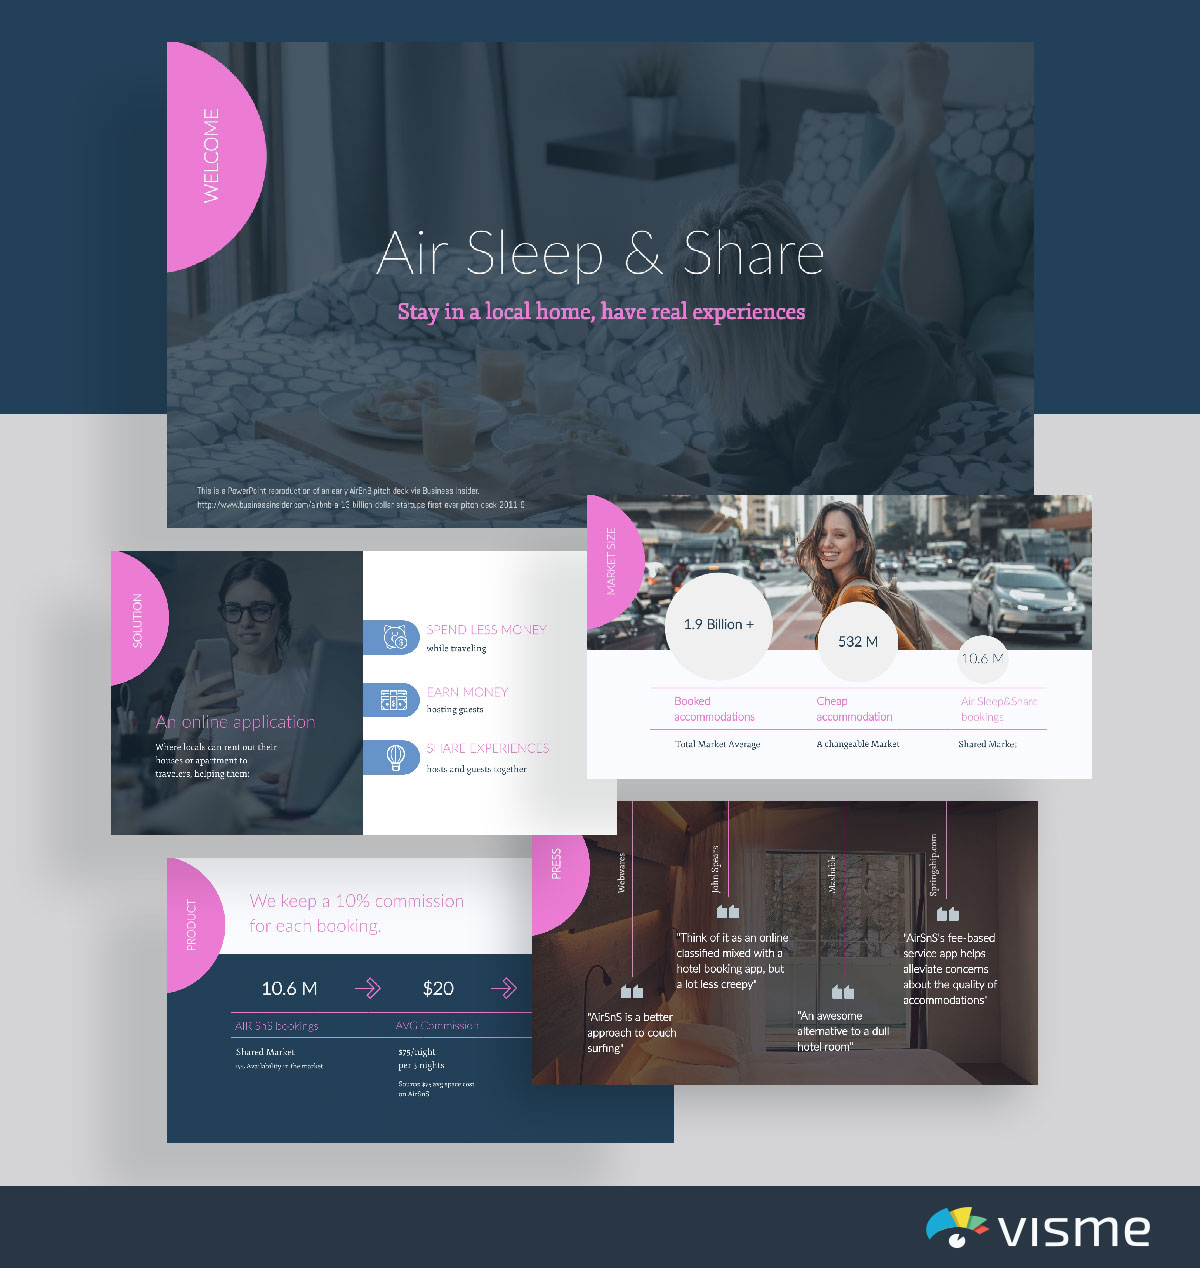 presentation slides - airsns airbnb pitch deck template visme